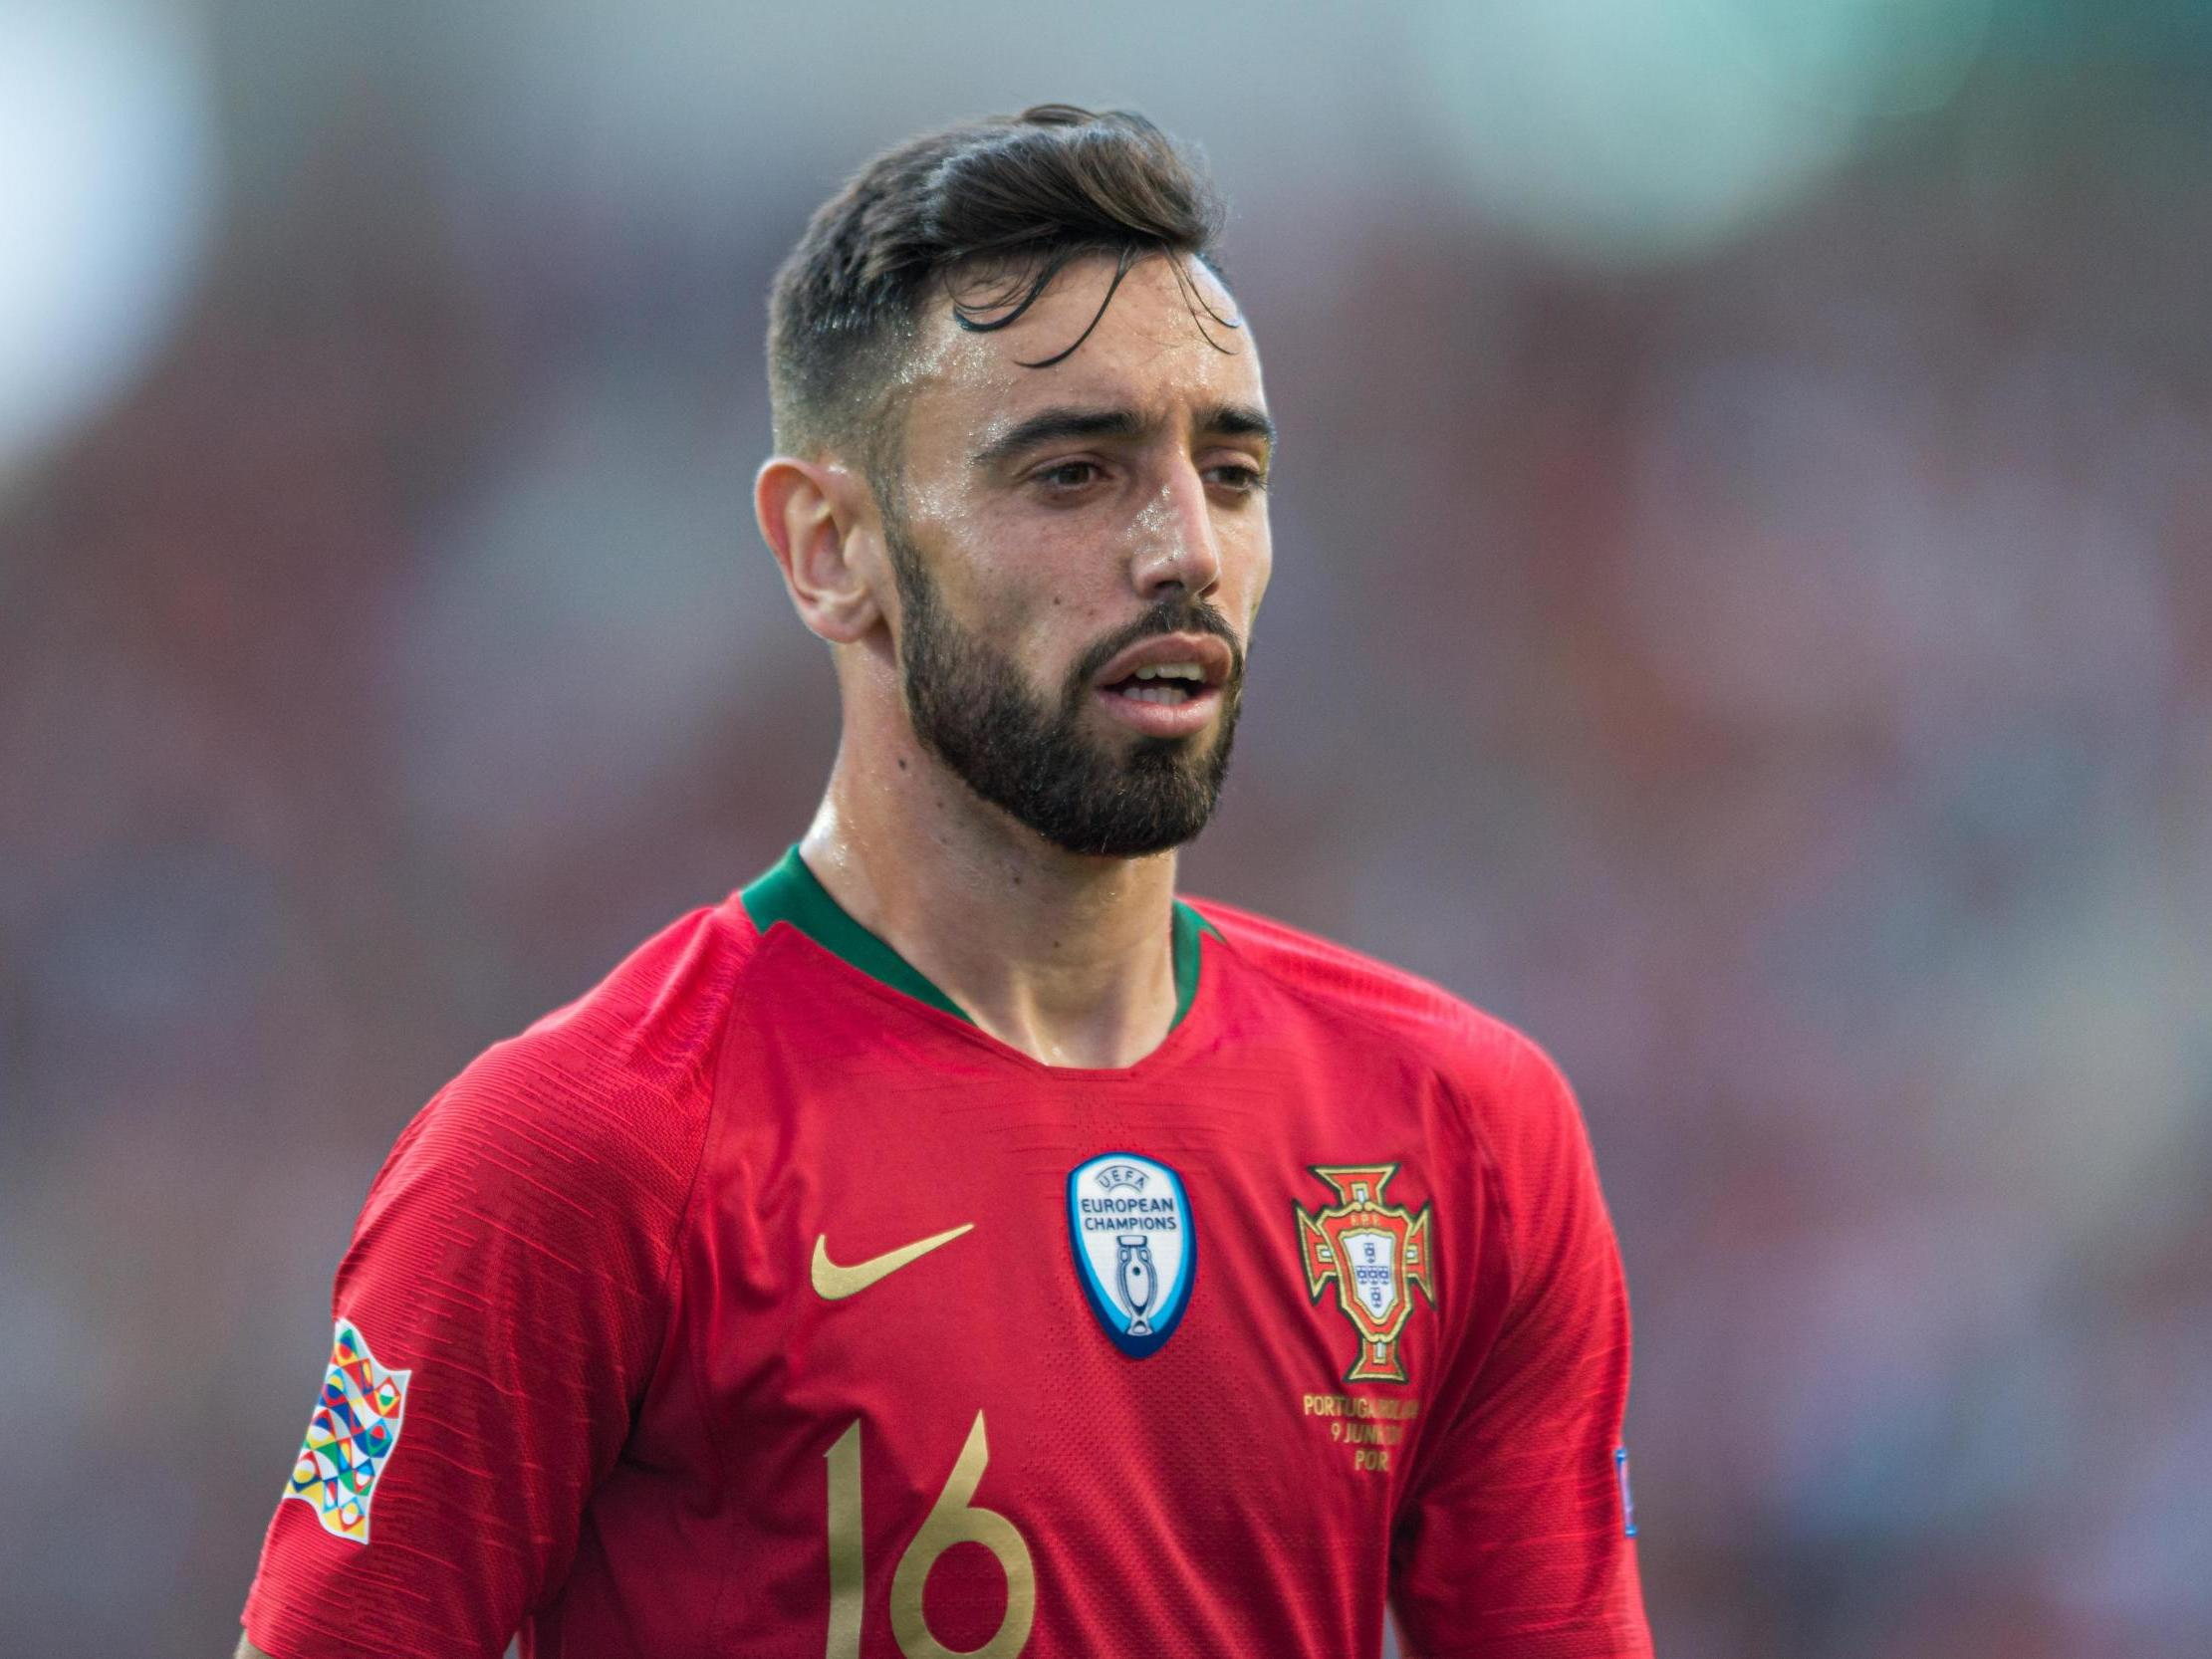 bruno fernandes - photo #20